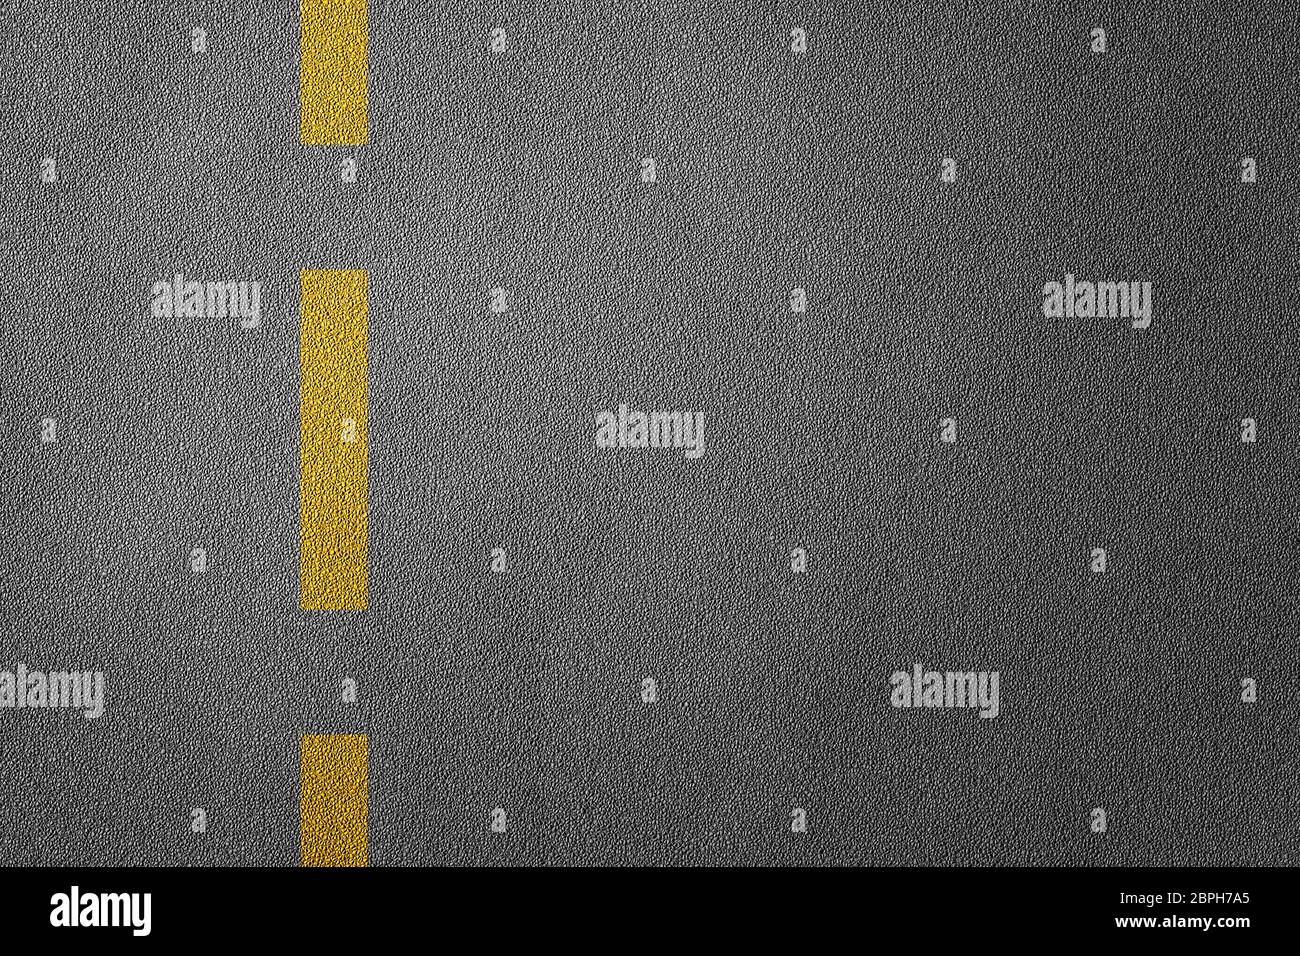 3D Illustration of a road divide with yellow lines pattern and background, textured traffic rules concept Stock Photo